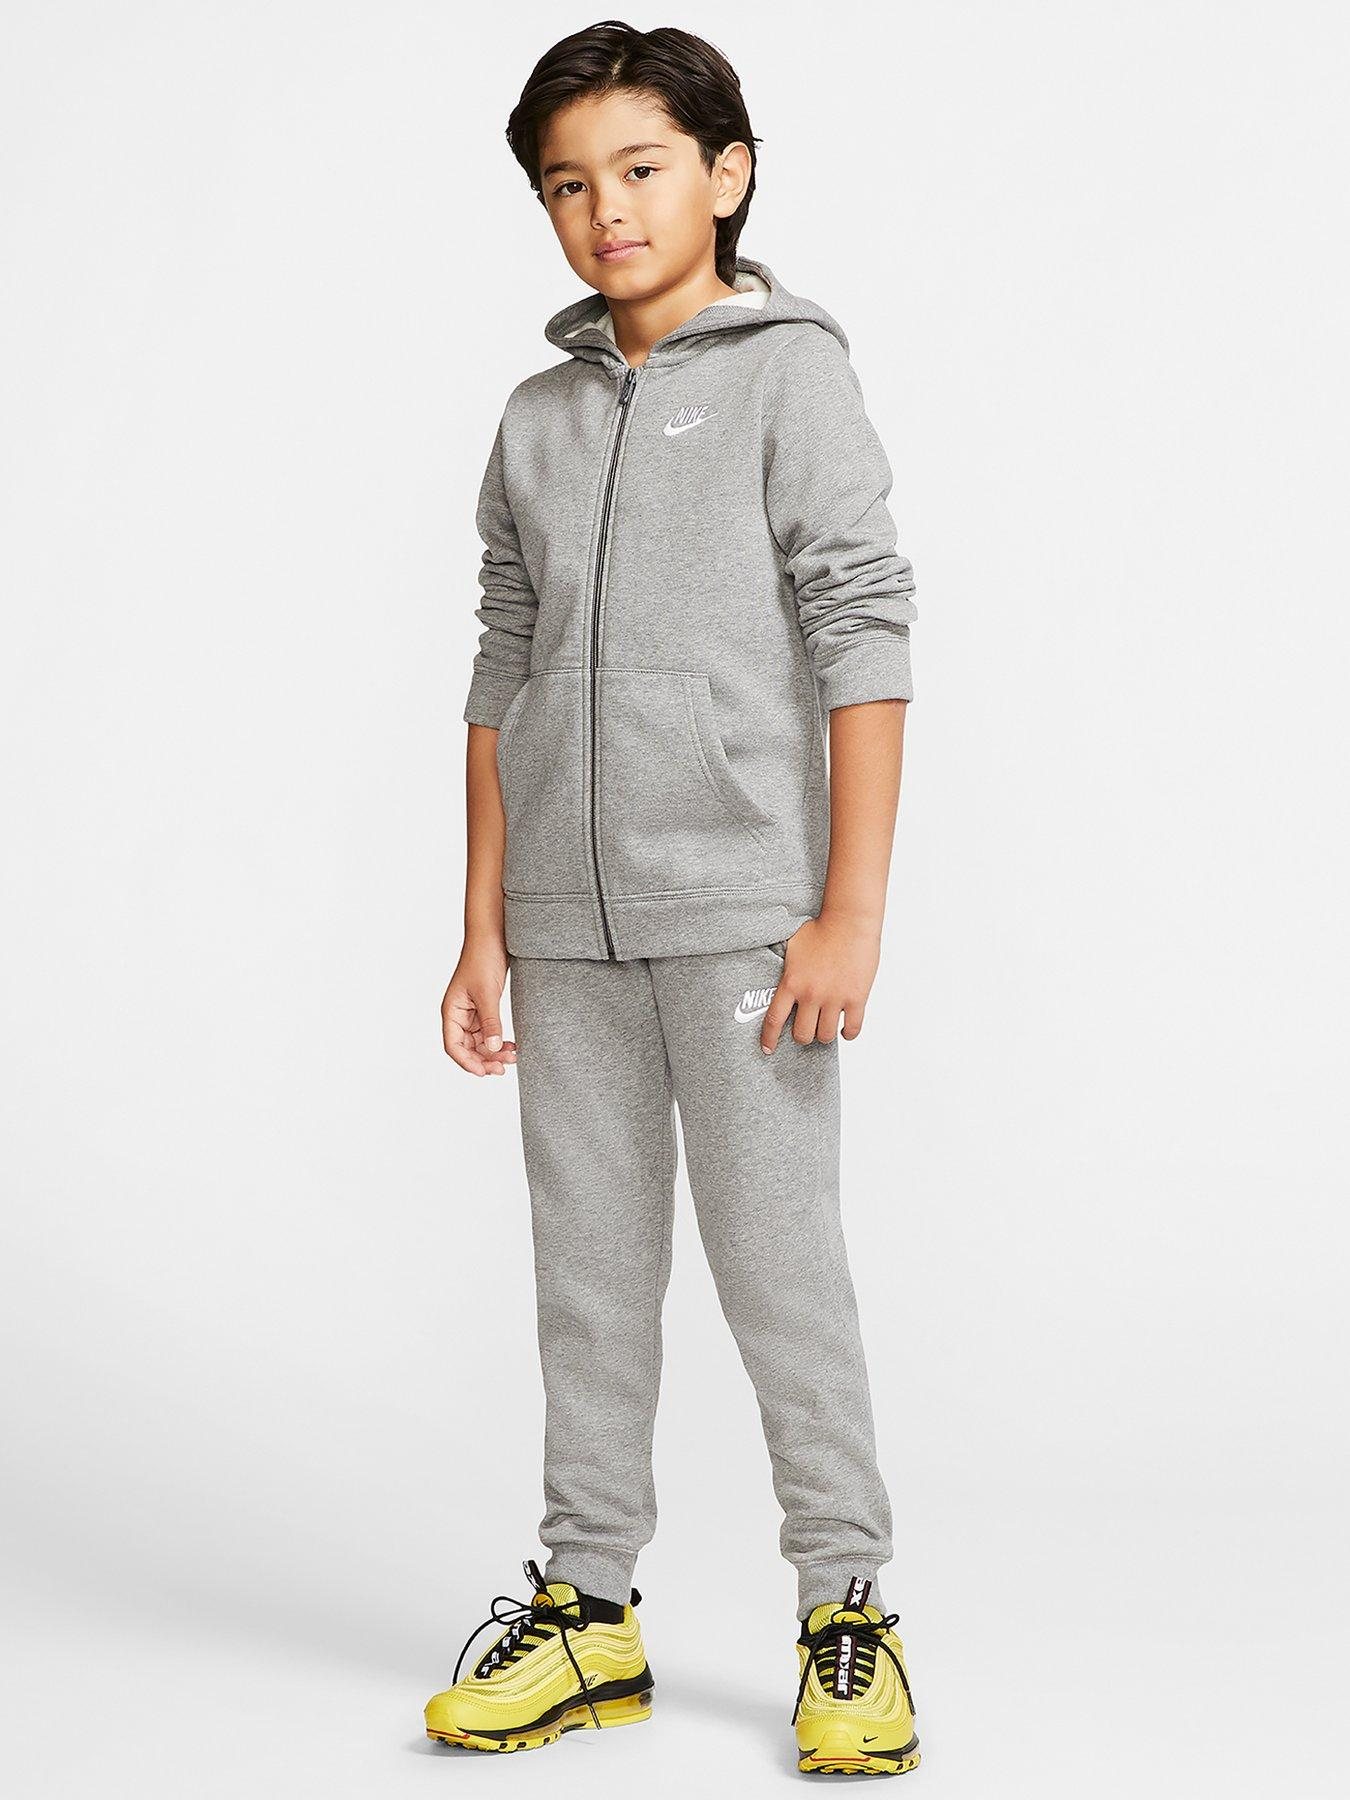 BOYS GIRLS TRACKSUIT HOODED TOP JOGGING BOTTOMS KIDS JOGGING SUITS AGE 7 TO 14